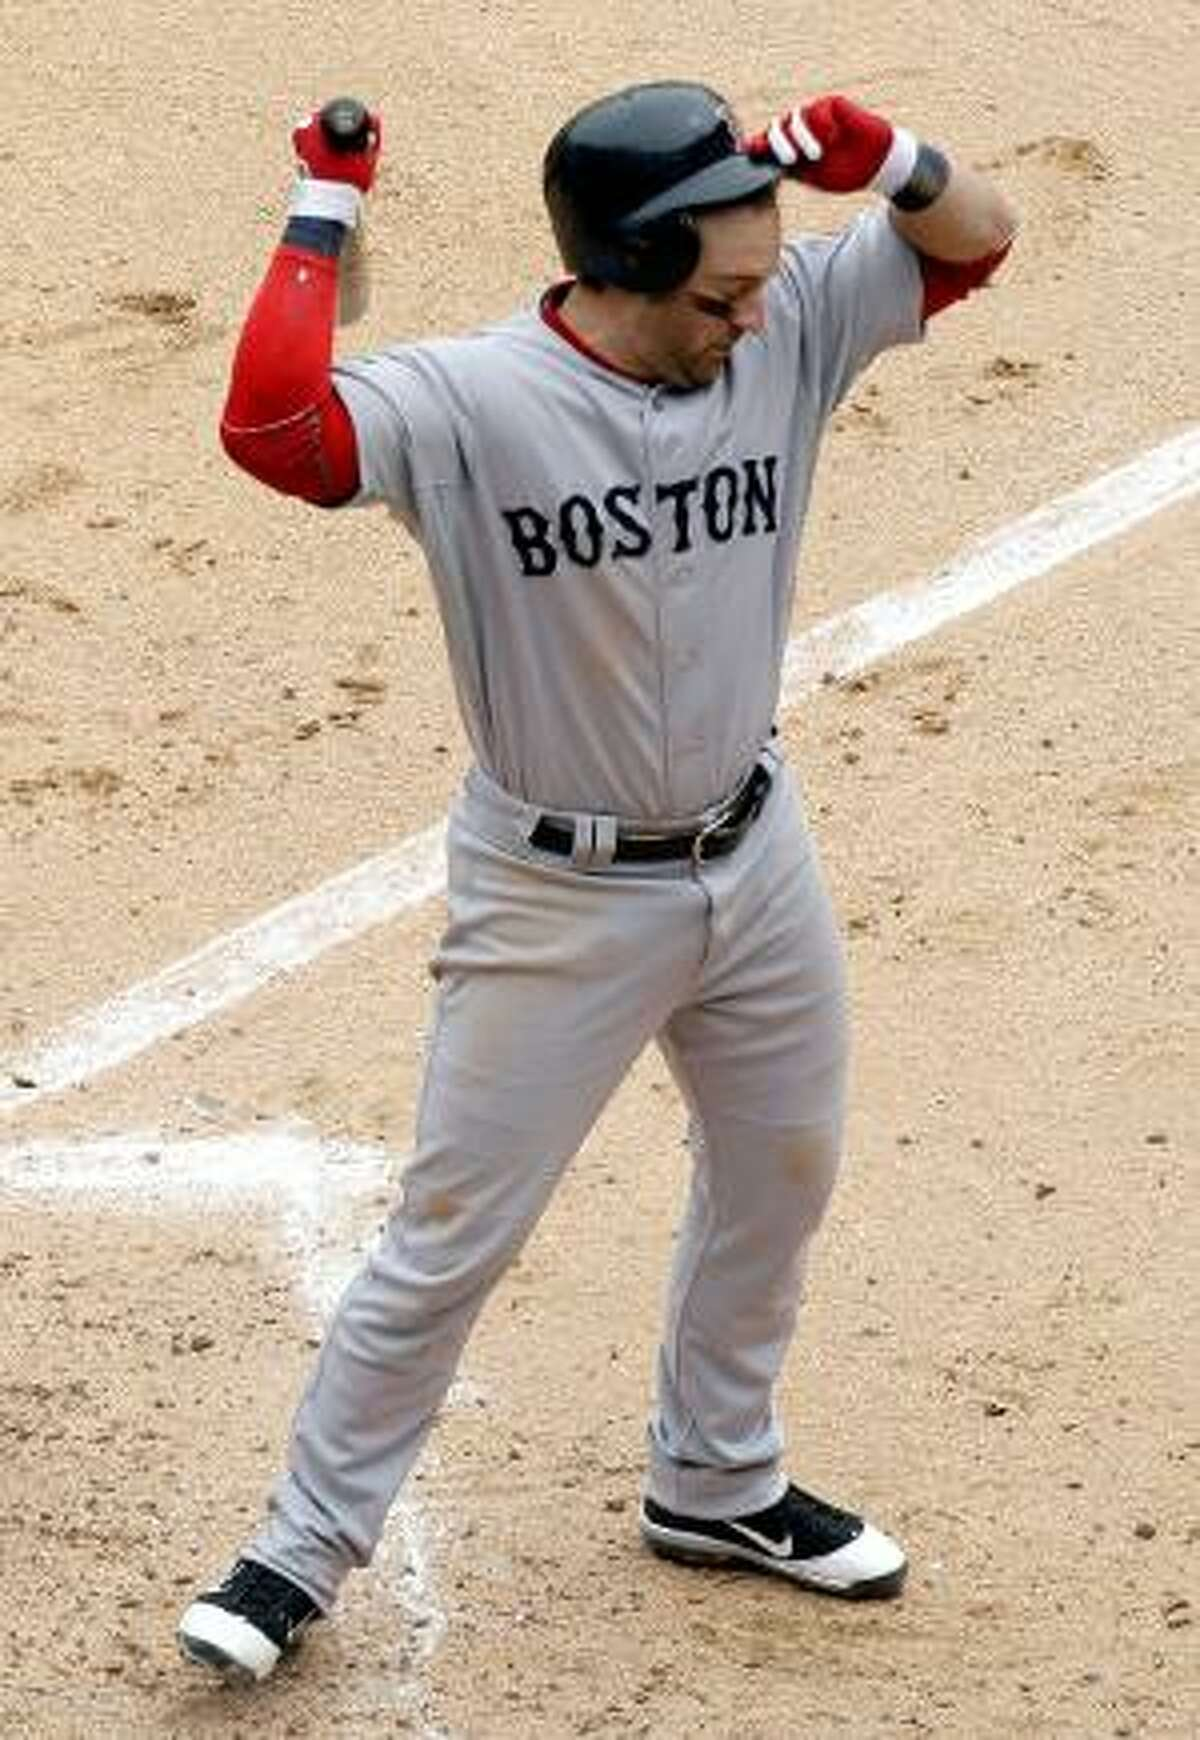 ASSOCIATED PRESS Boston Red Sox's Nick Punto reacts after being called out on strikes during the fifth inning of Sunday's game against the Chicago White Sox in Chicago. The Red Sox lost 4-1.